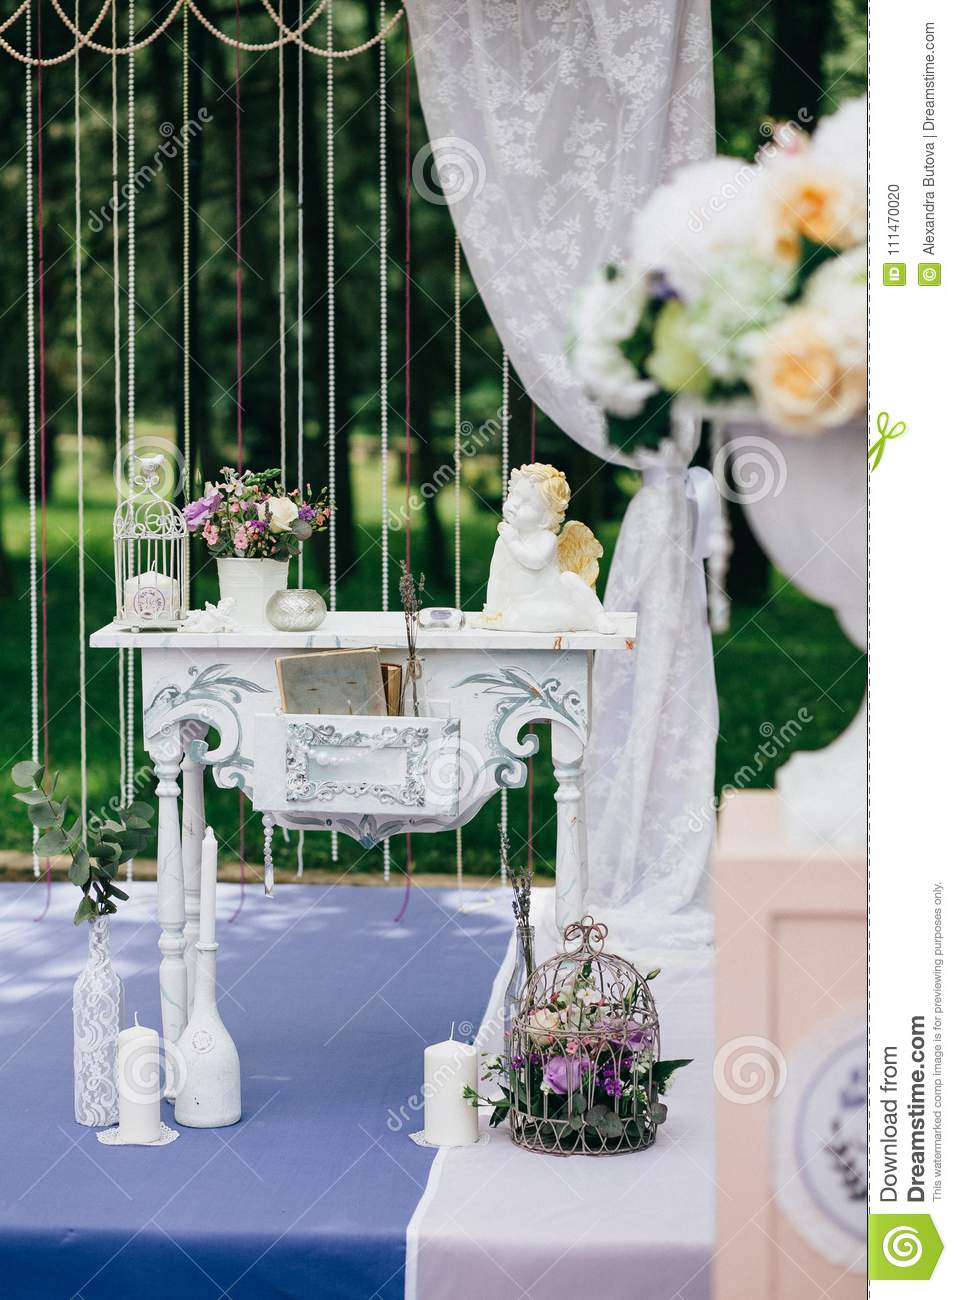 Decorative White Vintage Table At The Wedding Ceremony Candle